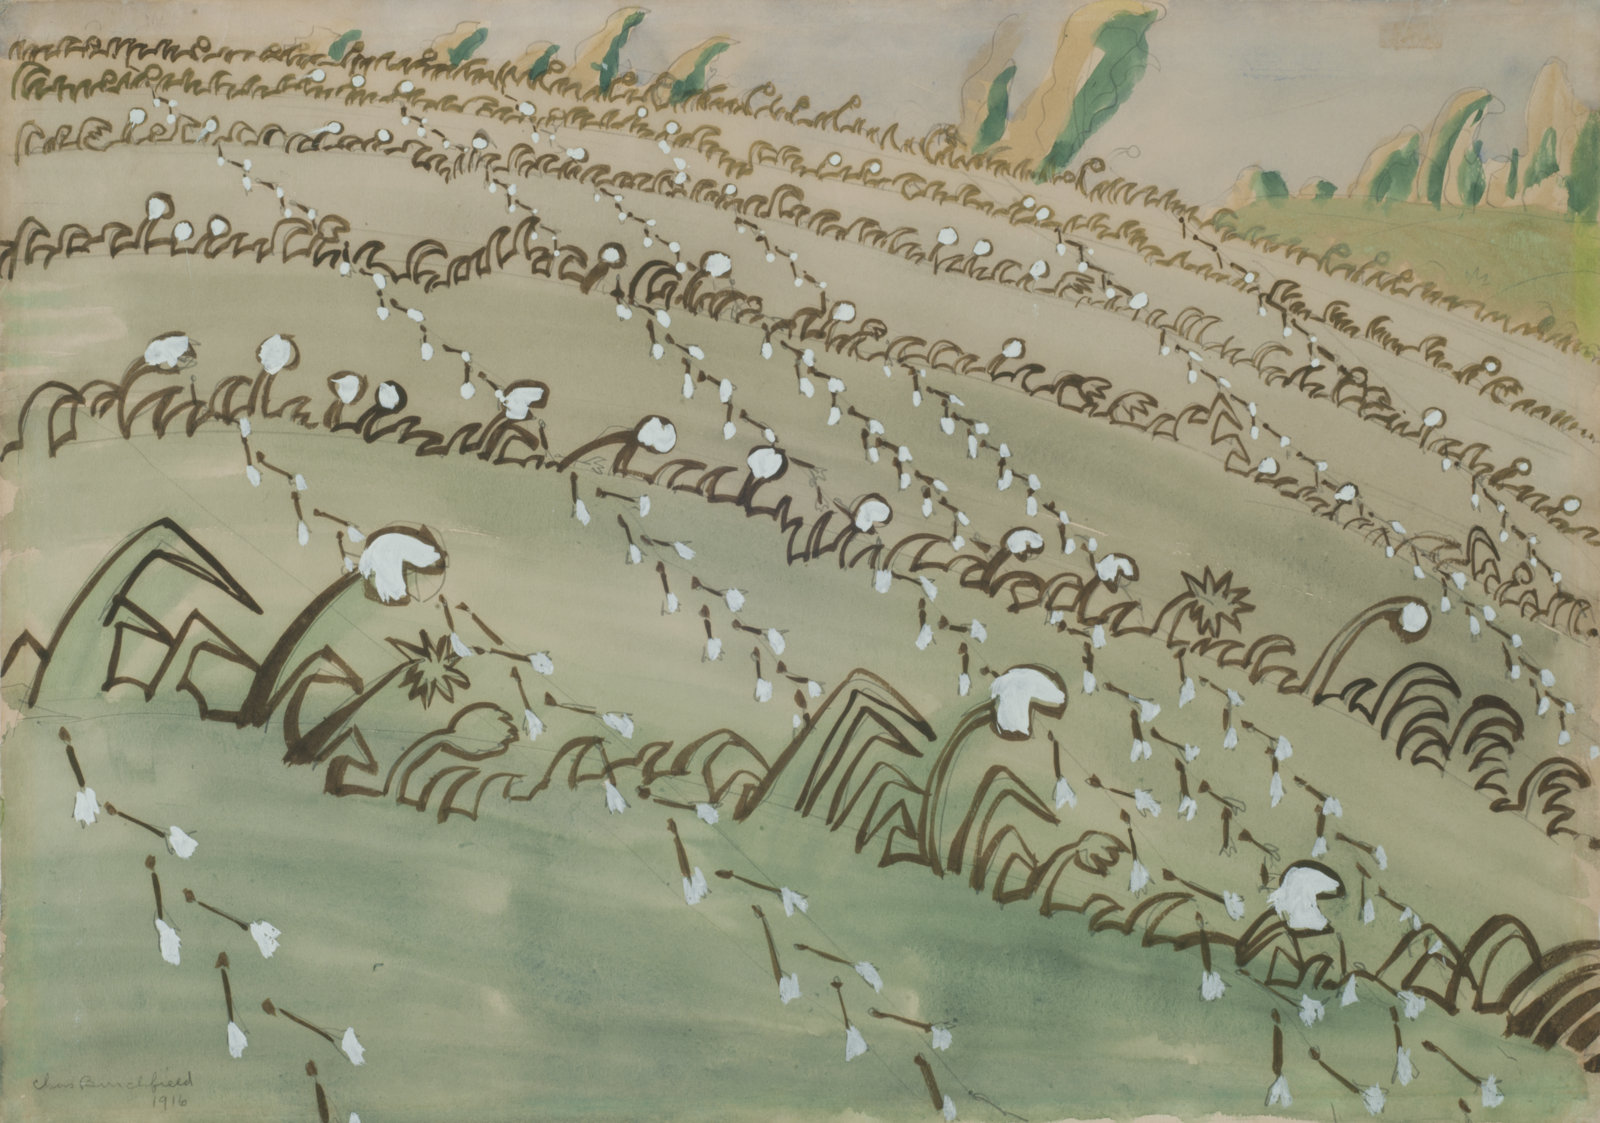 """Dandelion Field,"" a painting by Charles E. Burchfield, was recently acquired by the Burchfield Penney Art Center."